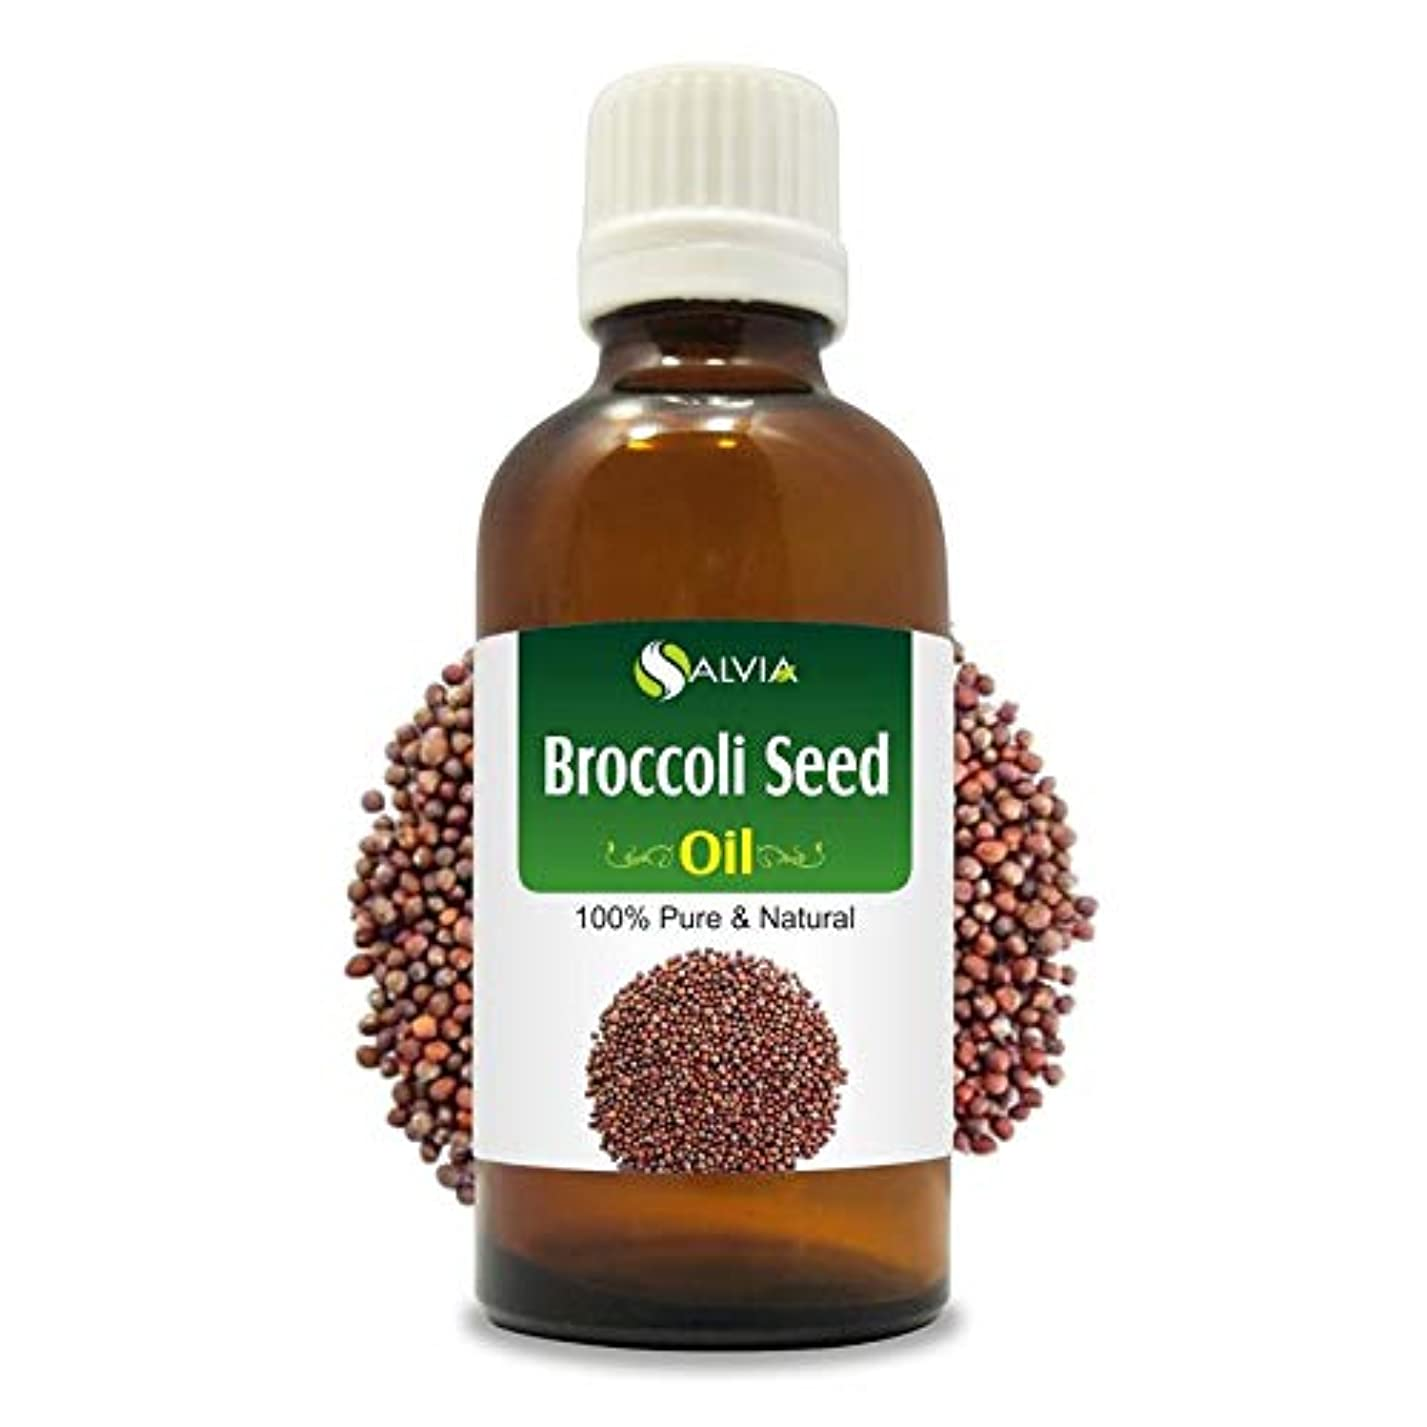 利用可能誤解させる砲兵Broccoli Seed Oil (Brassica oleracea var. italica) 100% Natural Pure Undiluted Uncut Carrier Oil 100ml